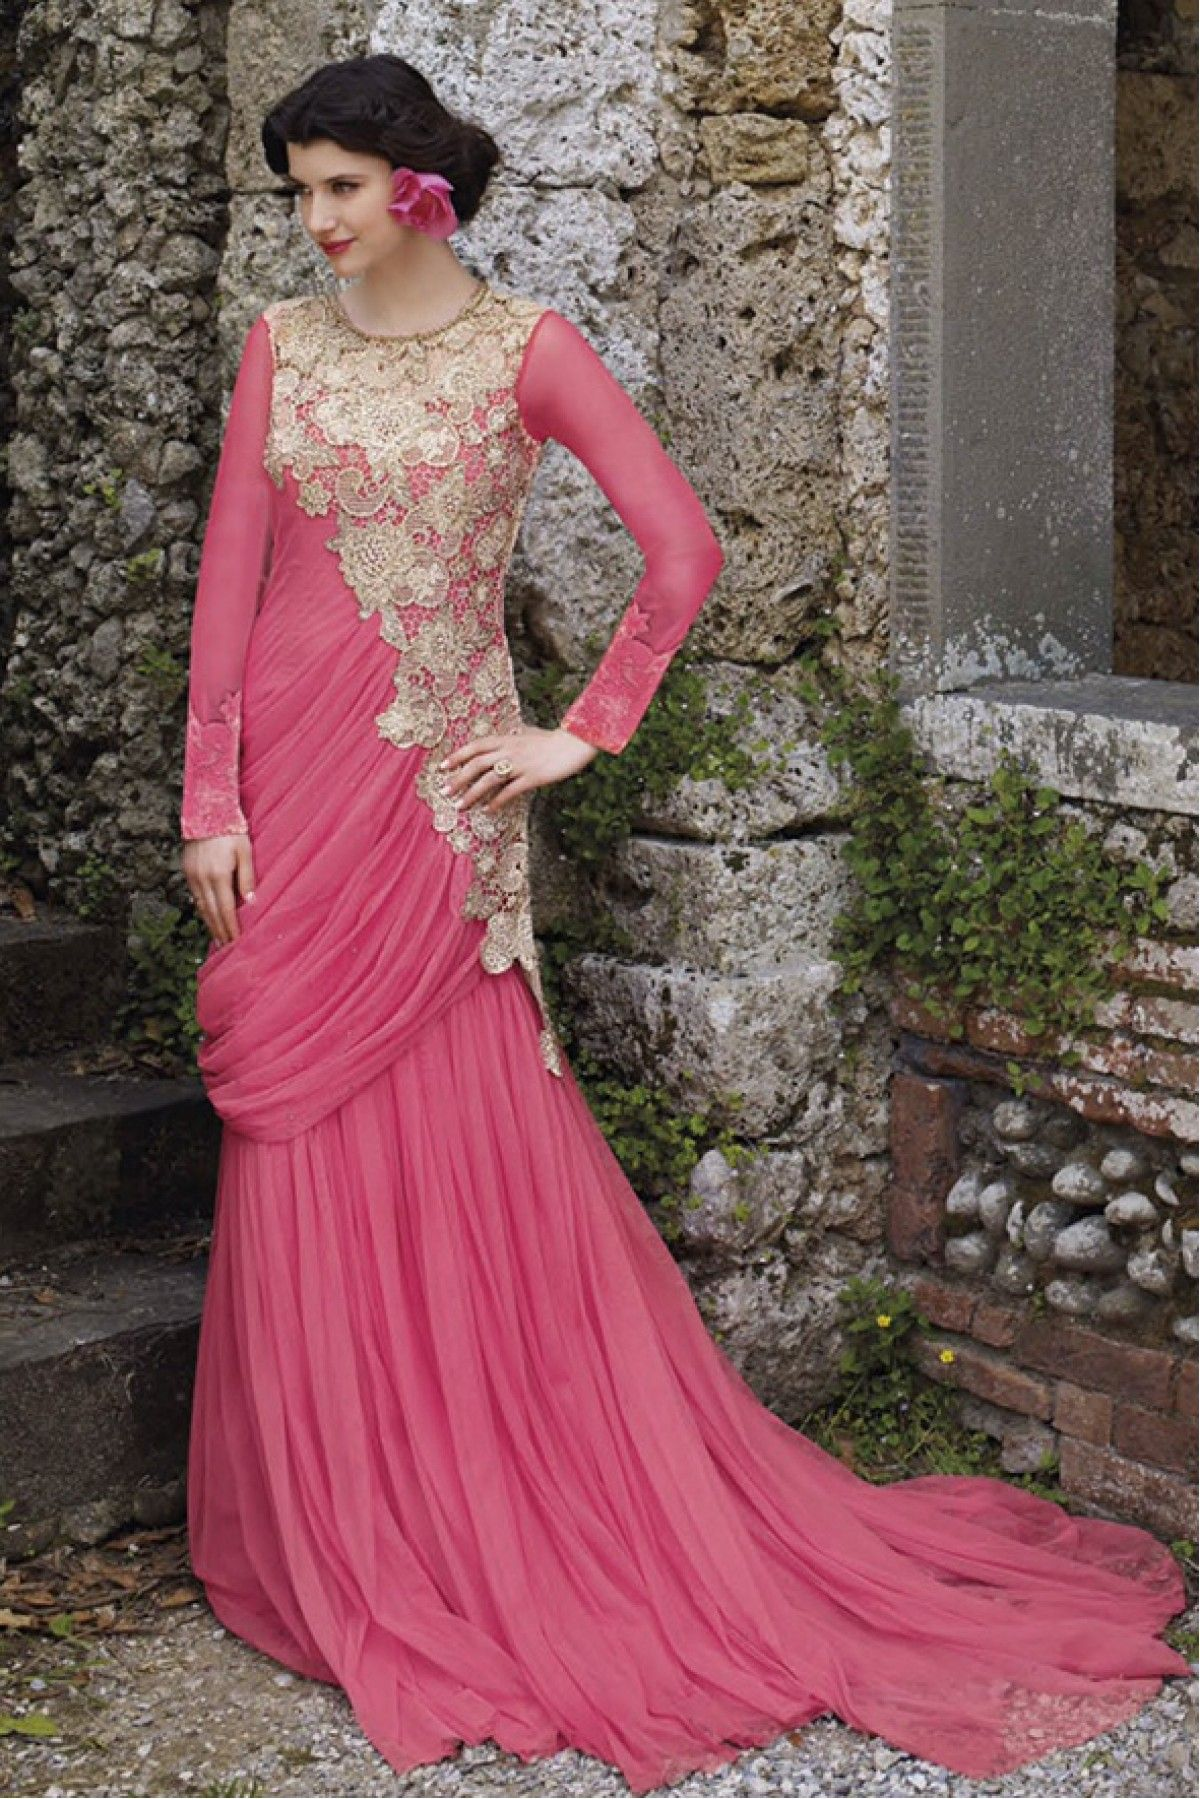 935c6fdade Pink Colour Net Fabric Designer Semi Stitched Gown Comes With Matching  Dupatta. This Gown Is Crafted With Embroidery,Sequins Work,Patch Work,Stone  Work,Zari ...